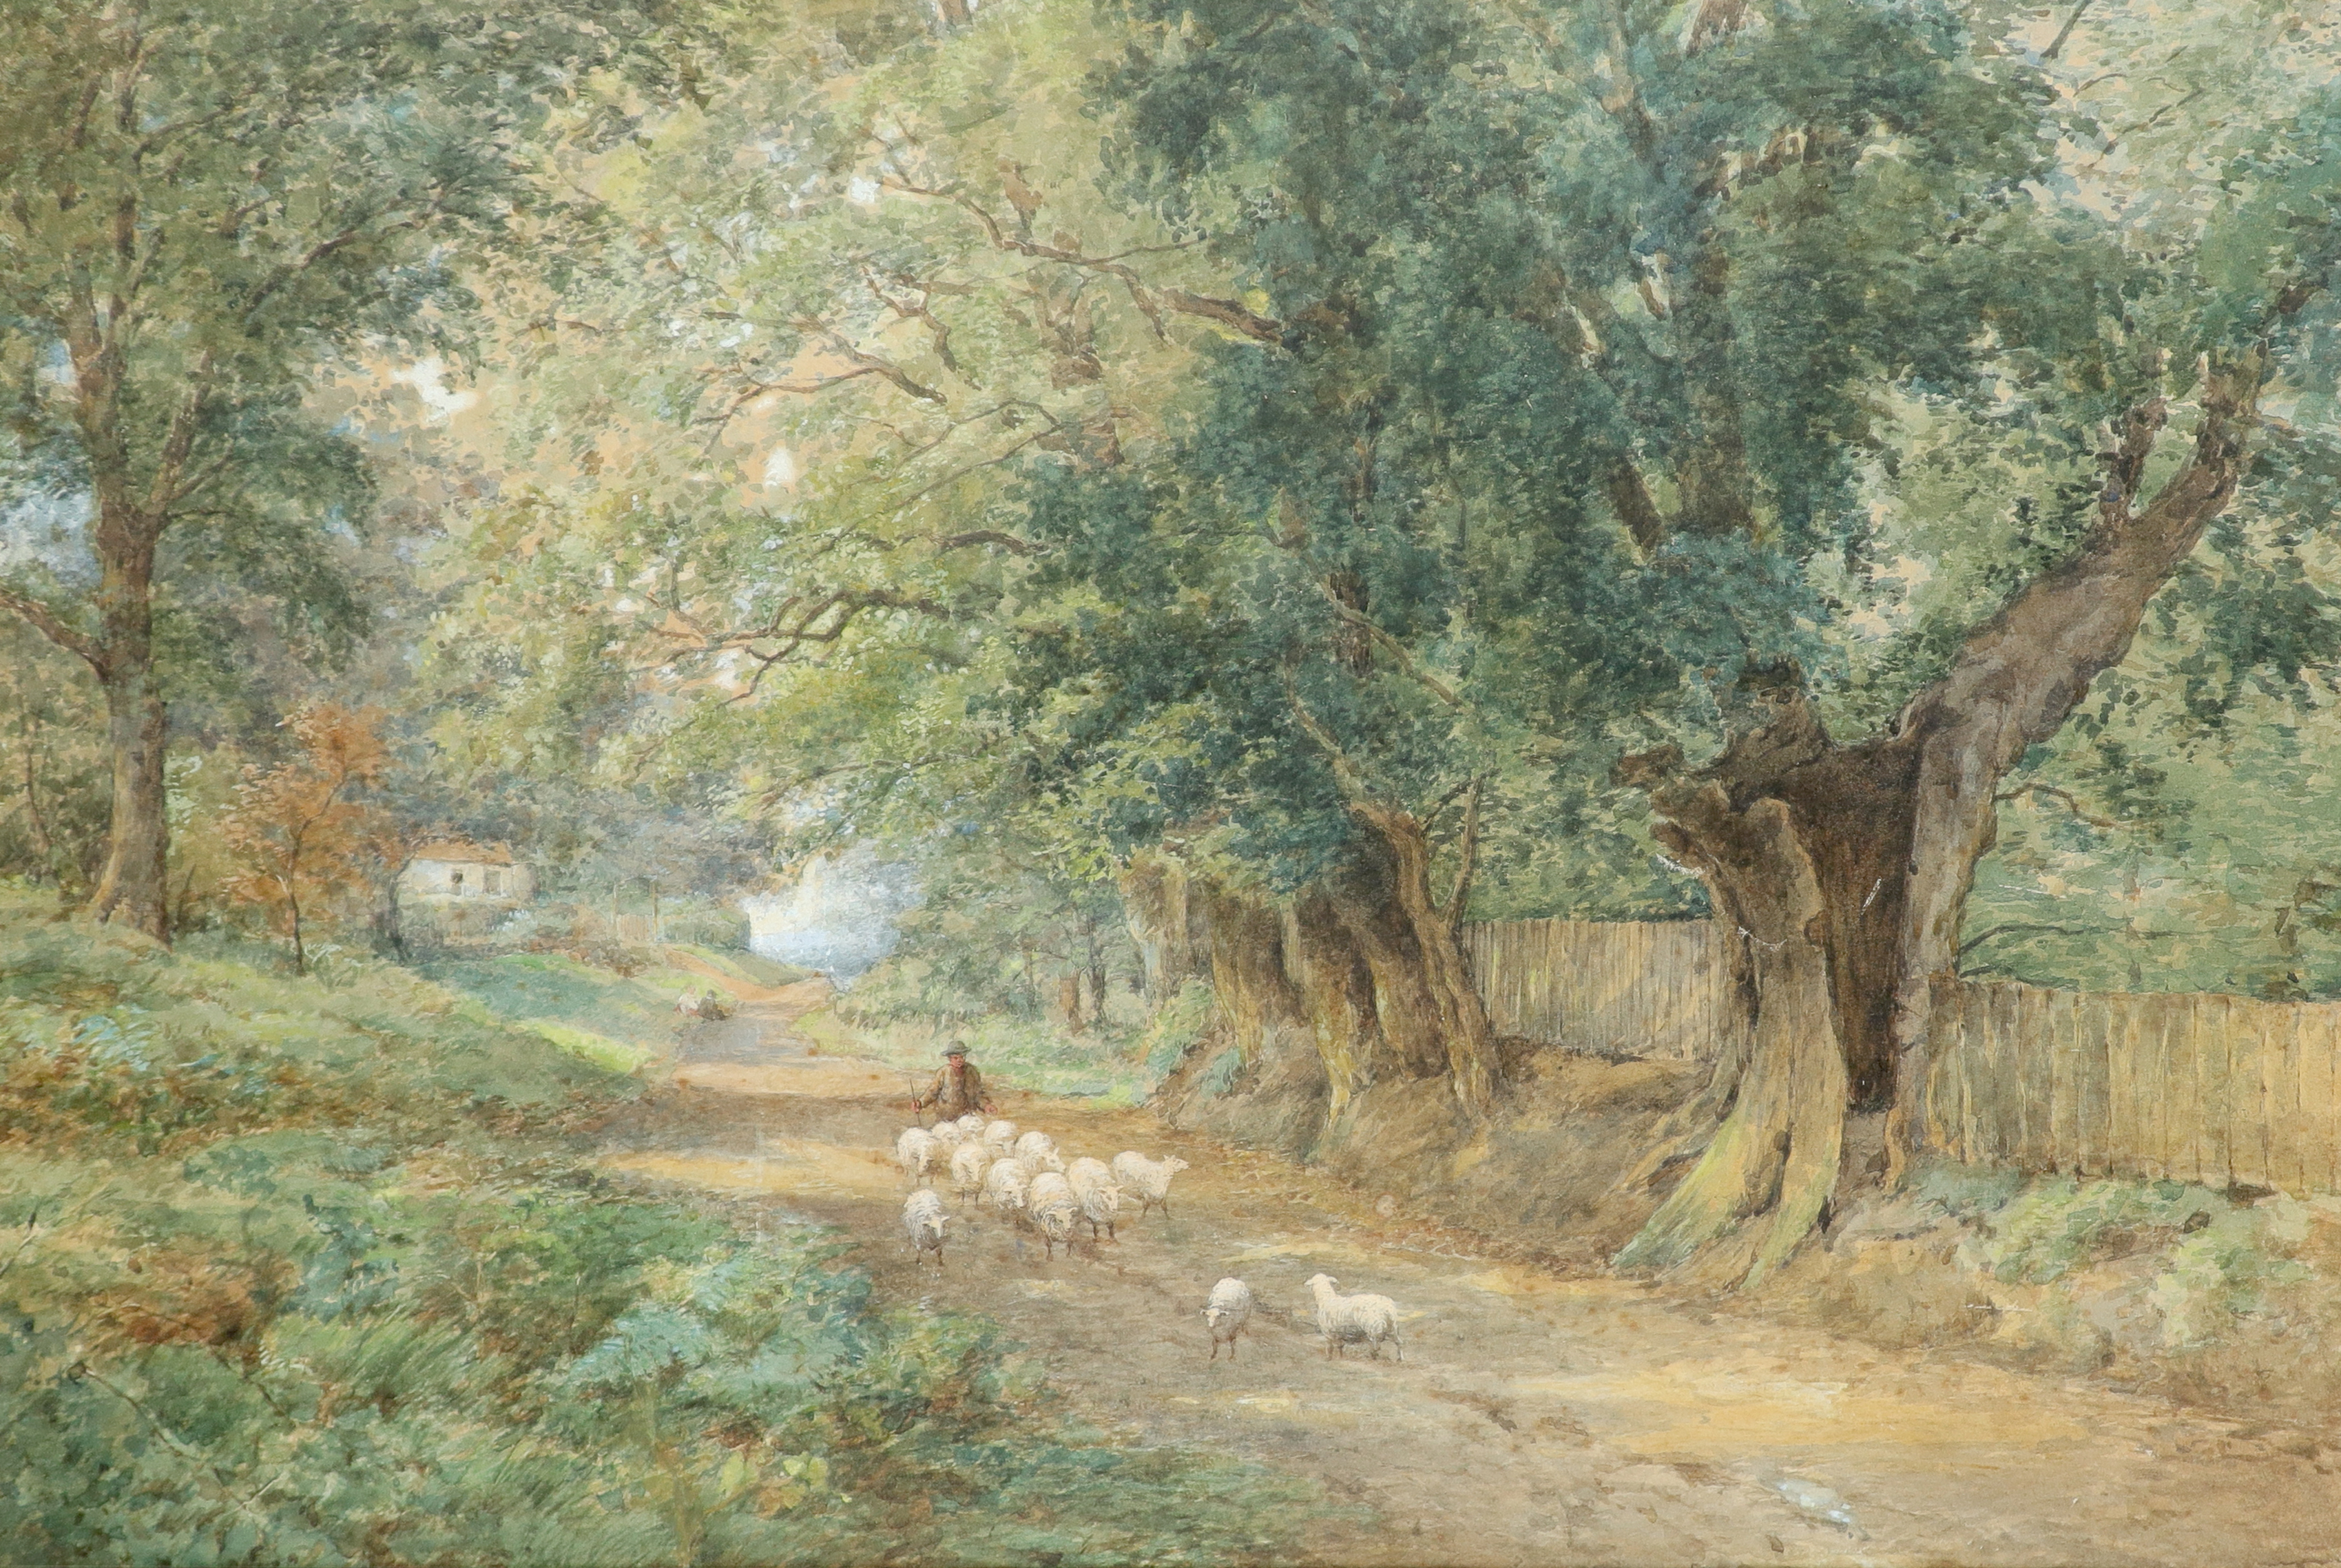 English School 19th Century A shepherd and his flock on a country road Pencil and watercolour